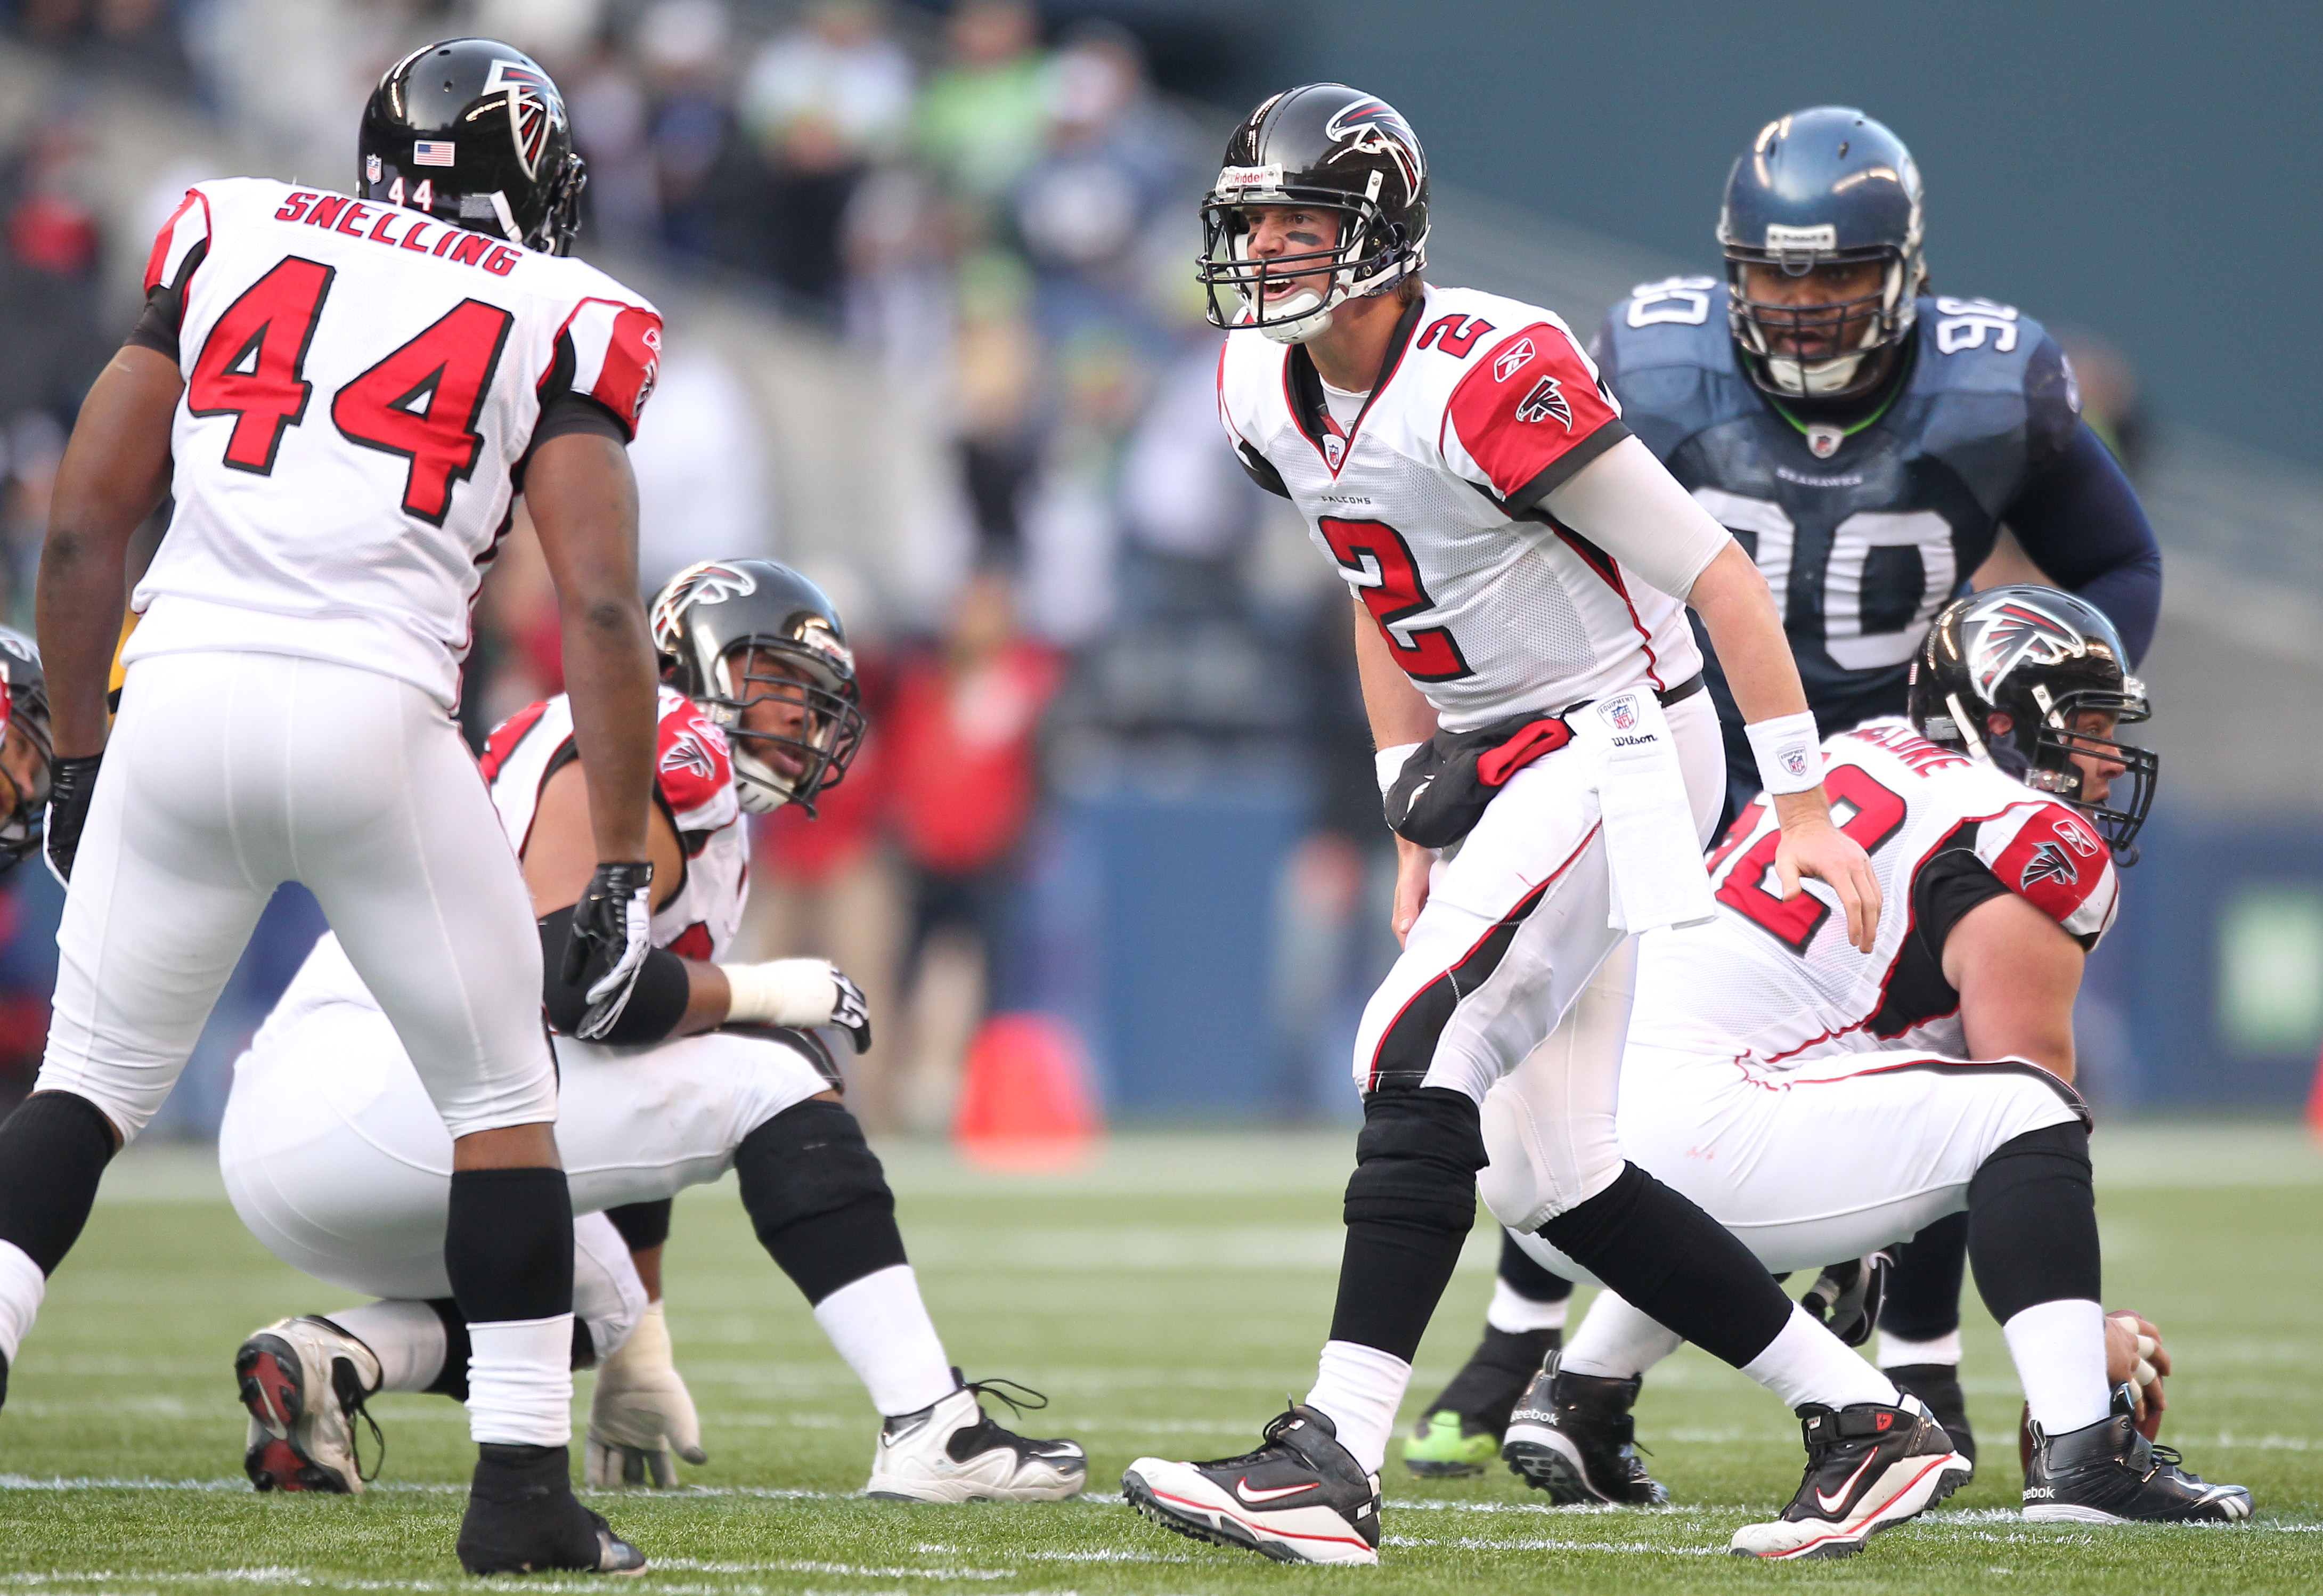 SEATTLE, WA - DECEMBER 19:  Quarterback Matt Ryan #2 of the Atlanta Falcons audibles to Jason Snelling #44 during the game against the Seattle Seahawks at Qwest Field on December 19, 2010 in Seattle, Washington. (Photo by Otto Greule Jr/Getty Images)